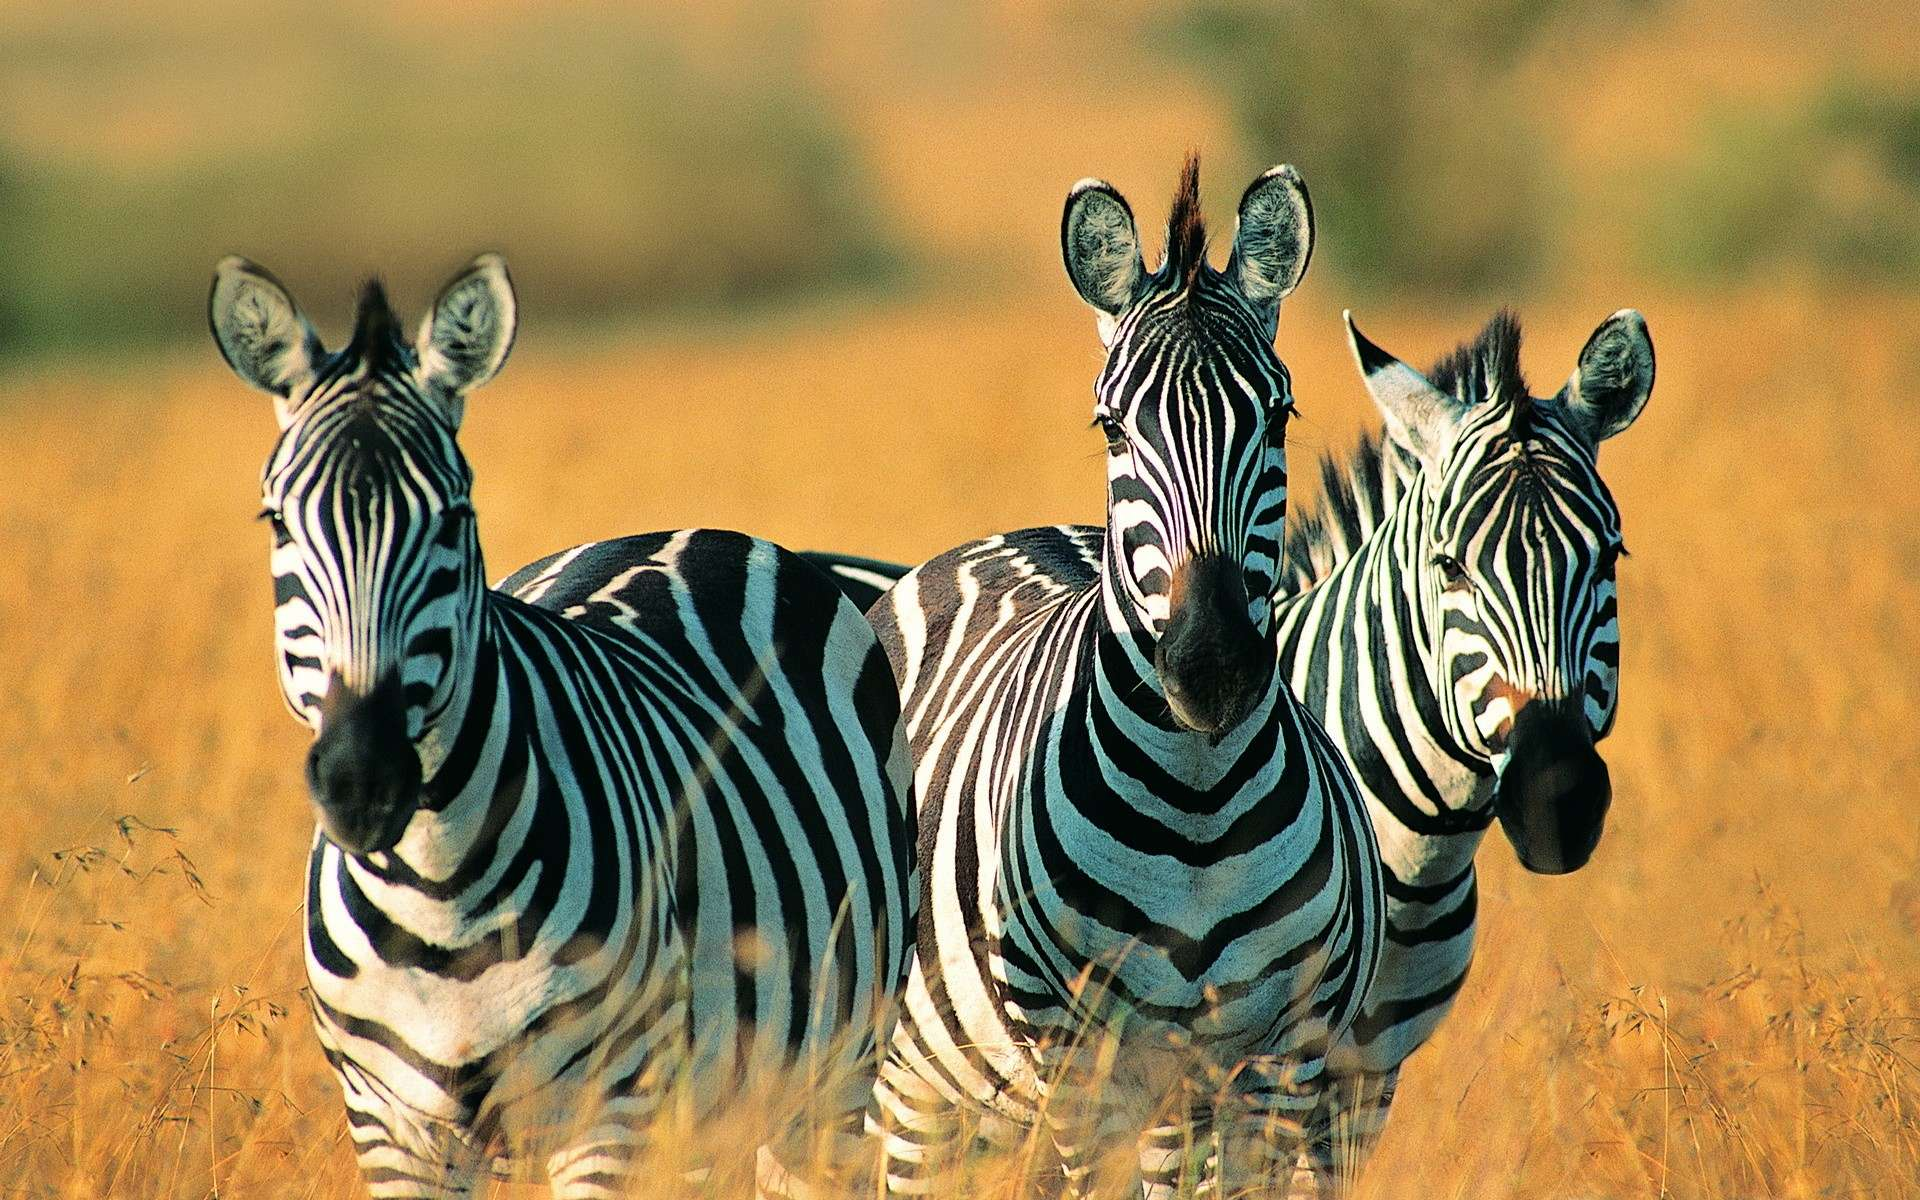 zebra hd wallpaper image free download photos